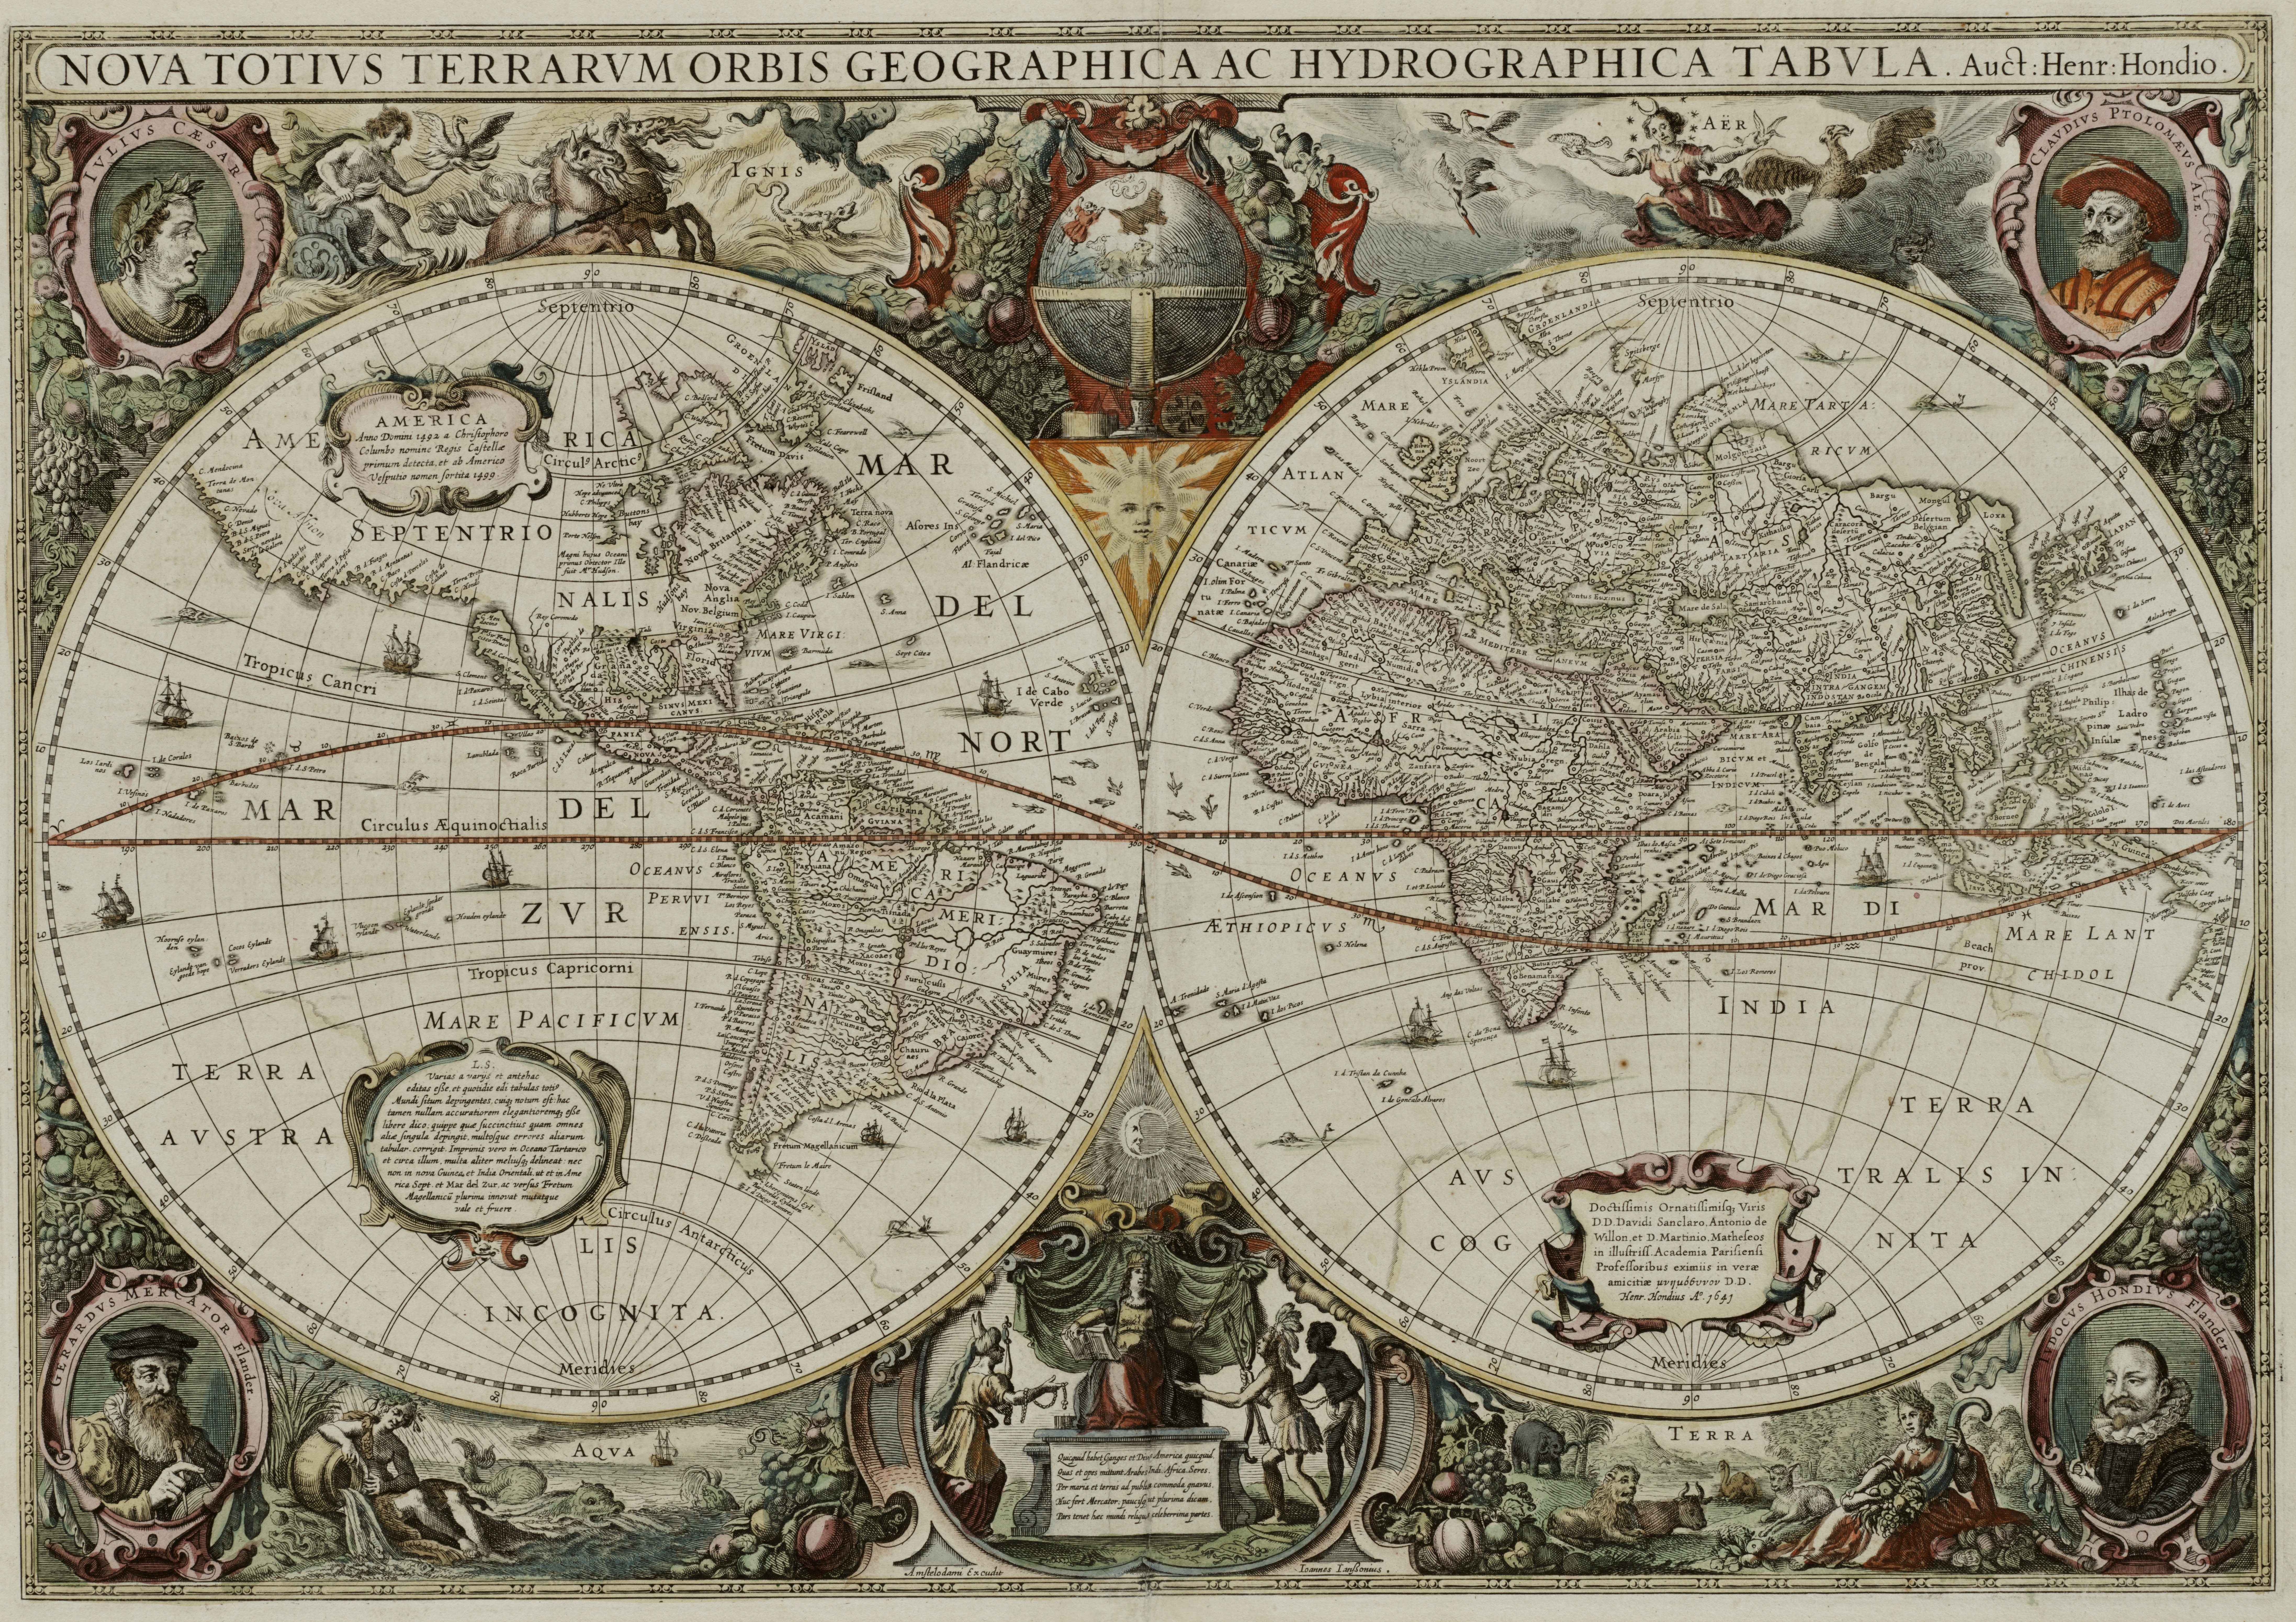 Global early modern europe julia m gossard taught fall 2015 in the history department gumiabroncs Choice Image